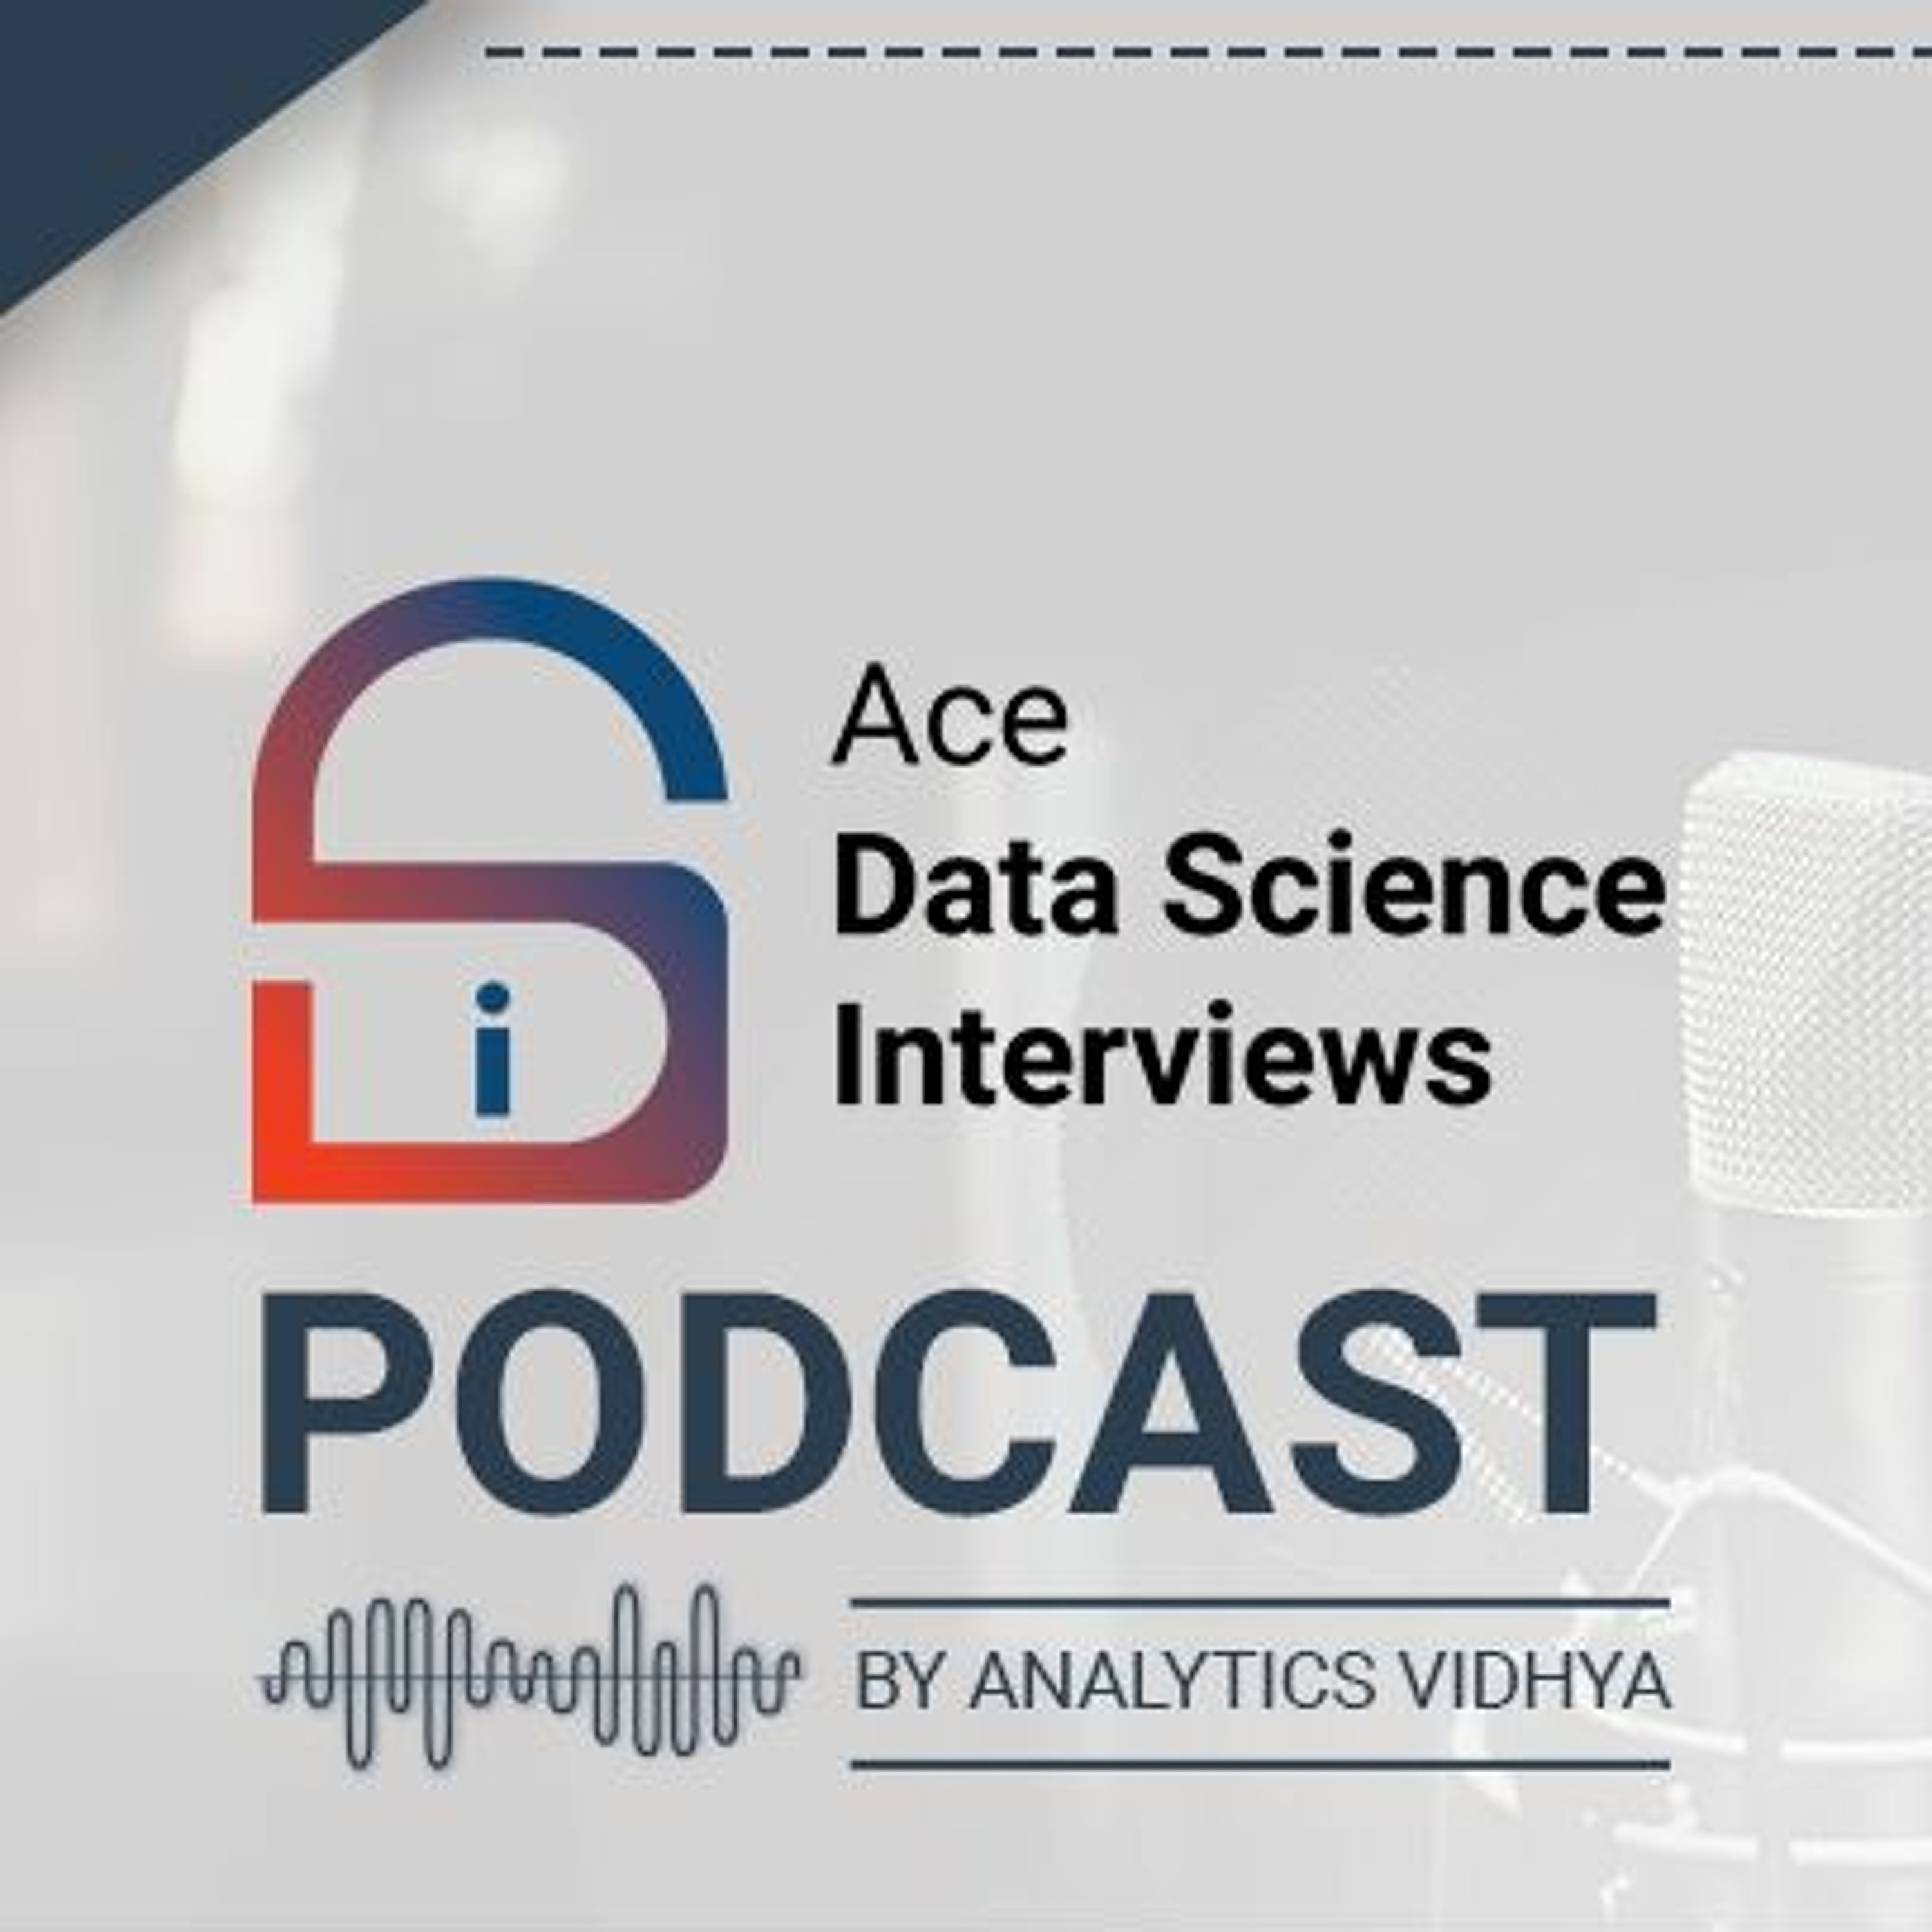 Episode #2: 3 Game-Changing Tips to Ace Data Science Interviews